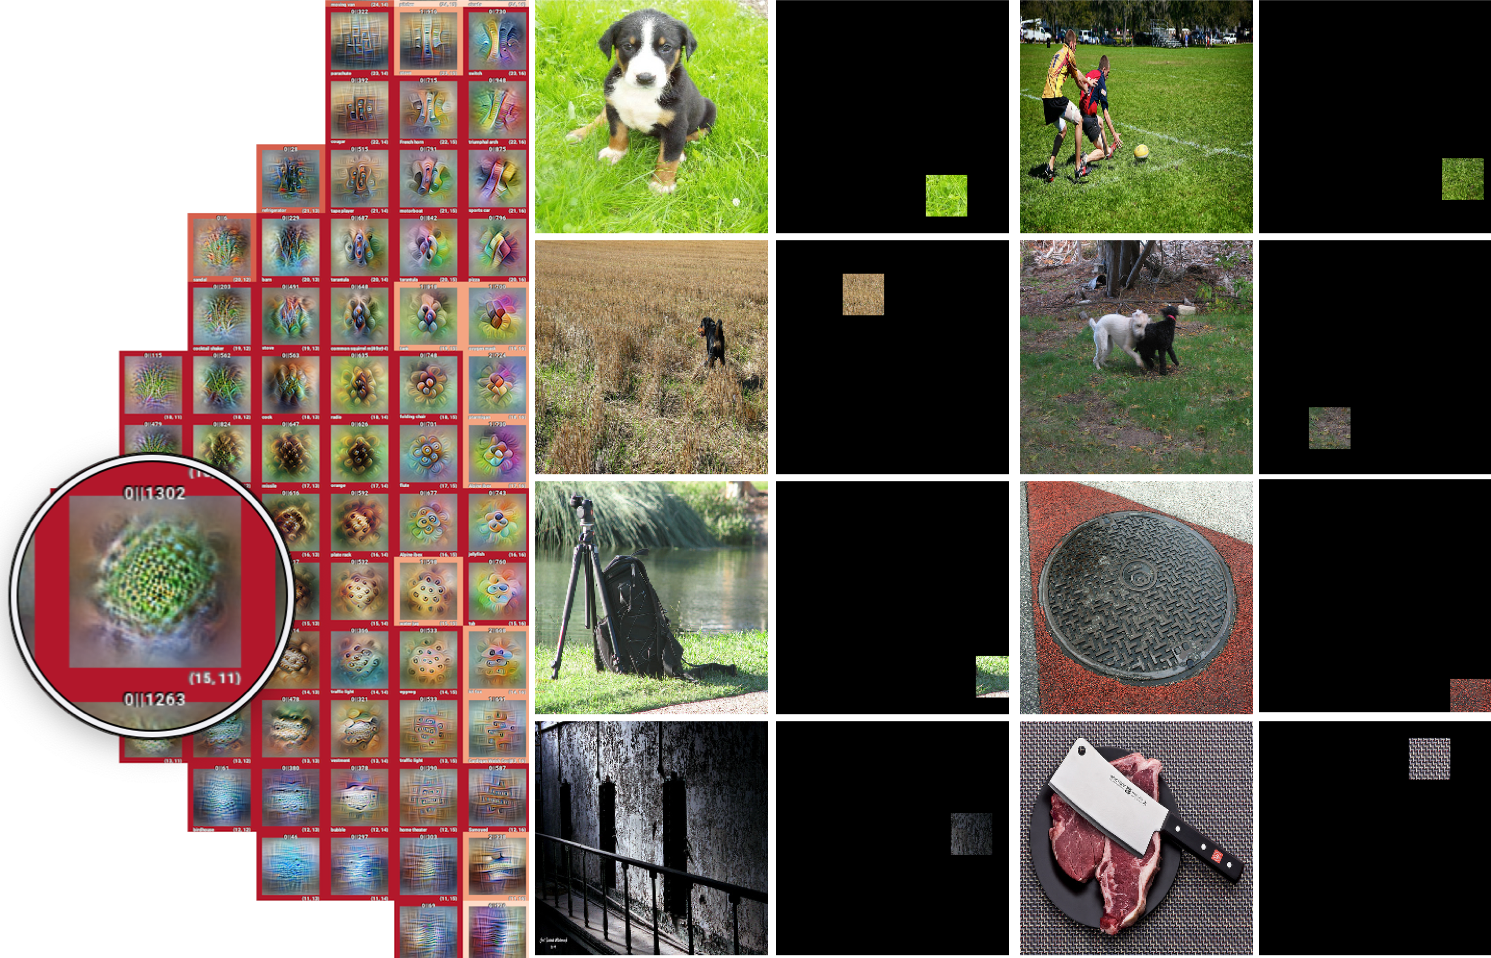 Mixed3a, Cell(15,11) in 40x40 Grid: Dataset examples & spatial activation slices taken from ImageNet during experiment